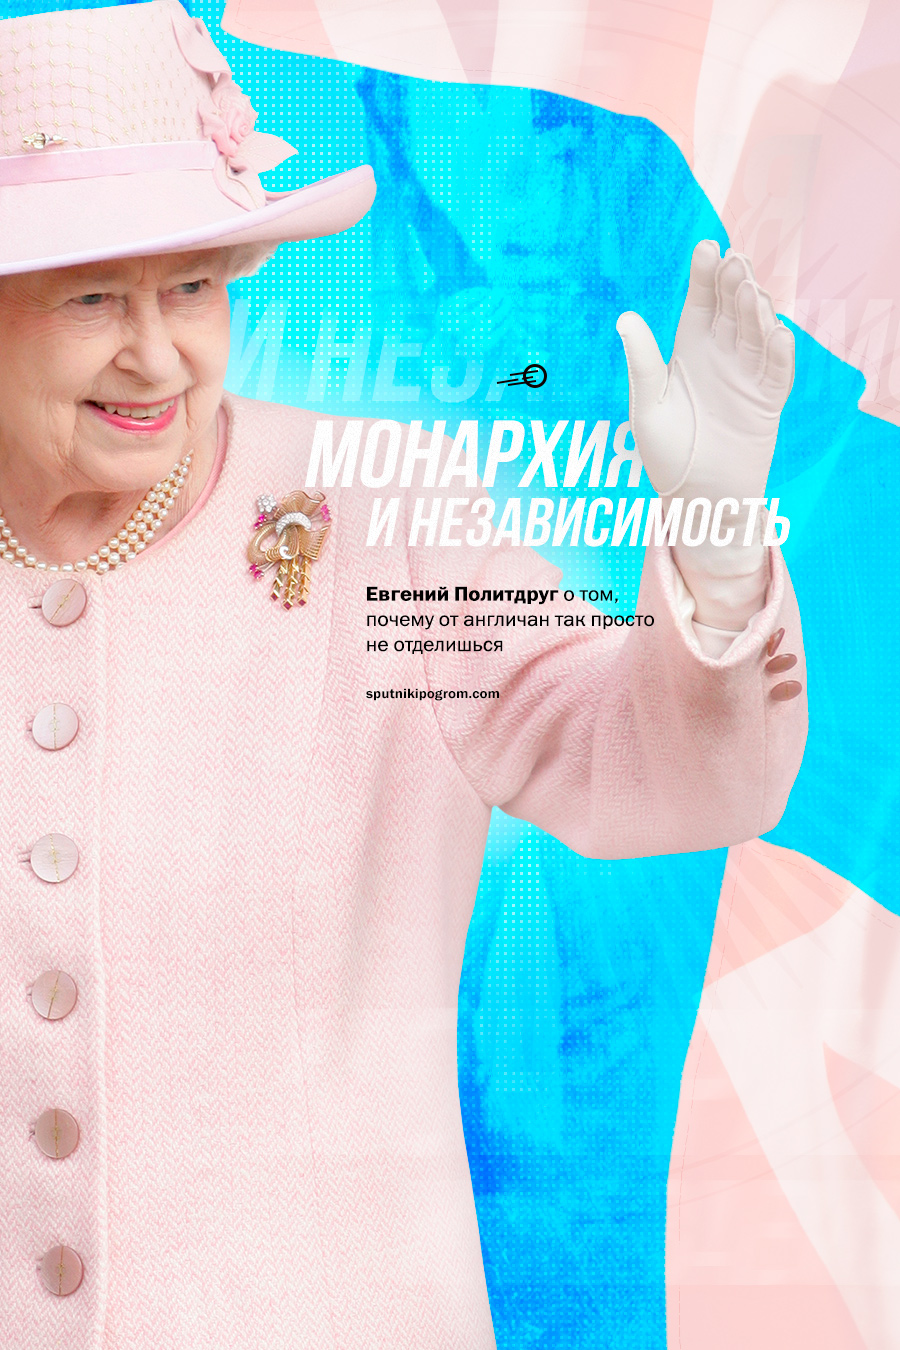 monarchy-and-independence